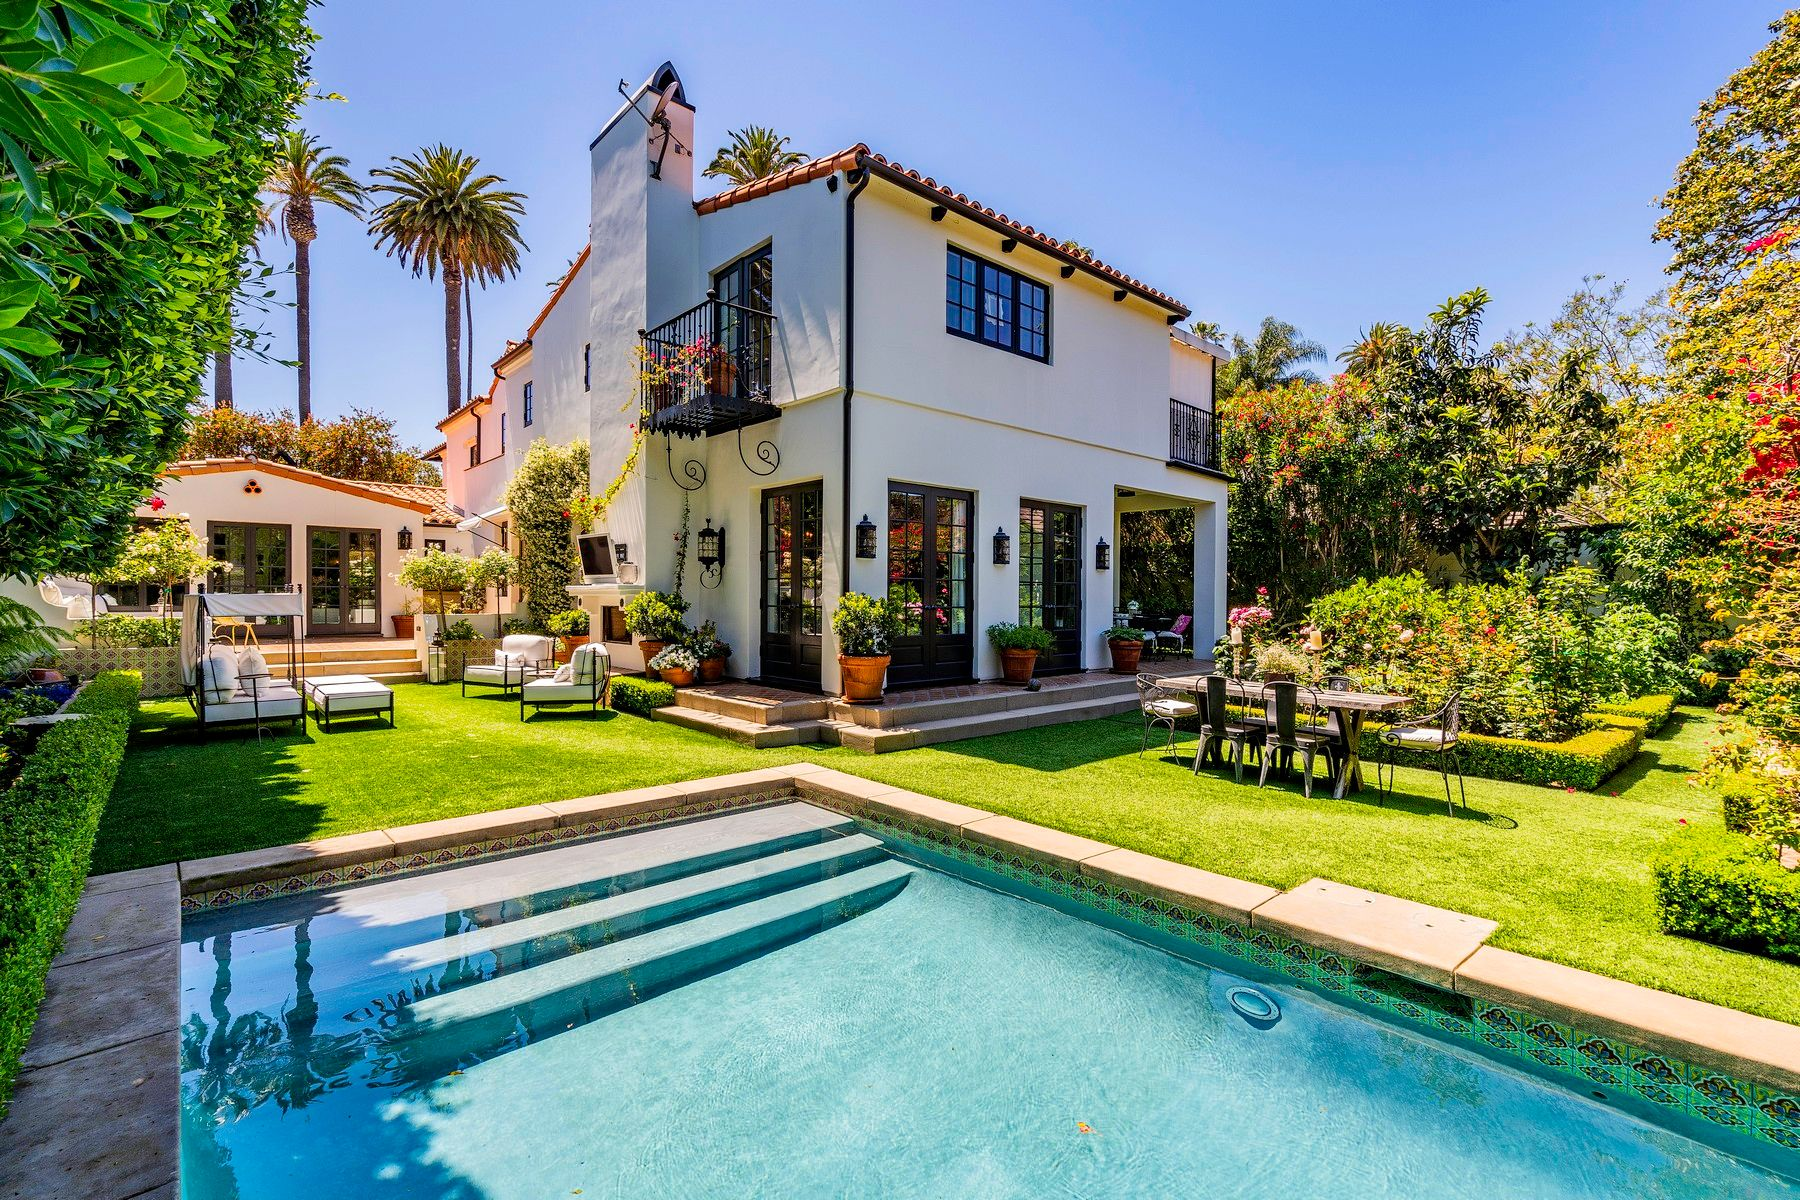 Single Family Homes for Sale at 510 N Hillcrest Rd 510 N Hillcrest Road Beverly Hills, California 90210 United States